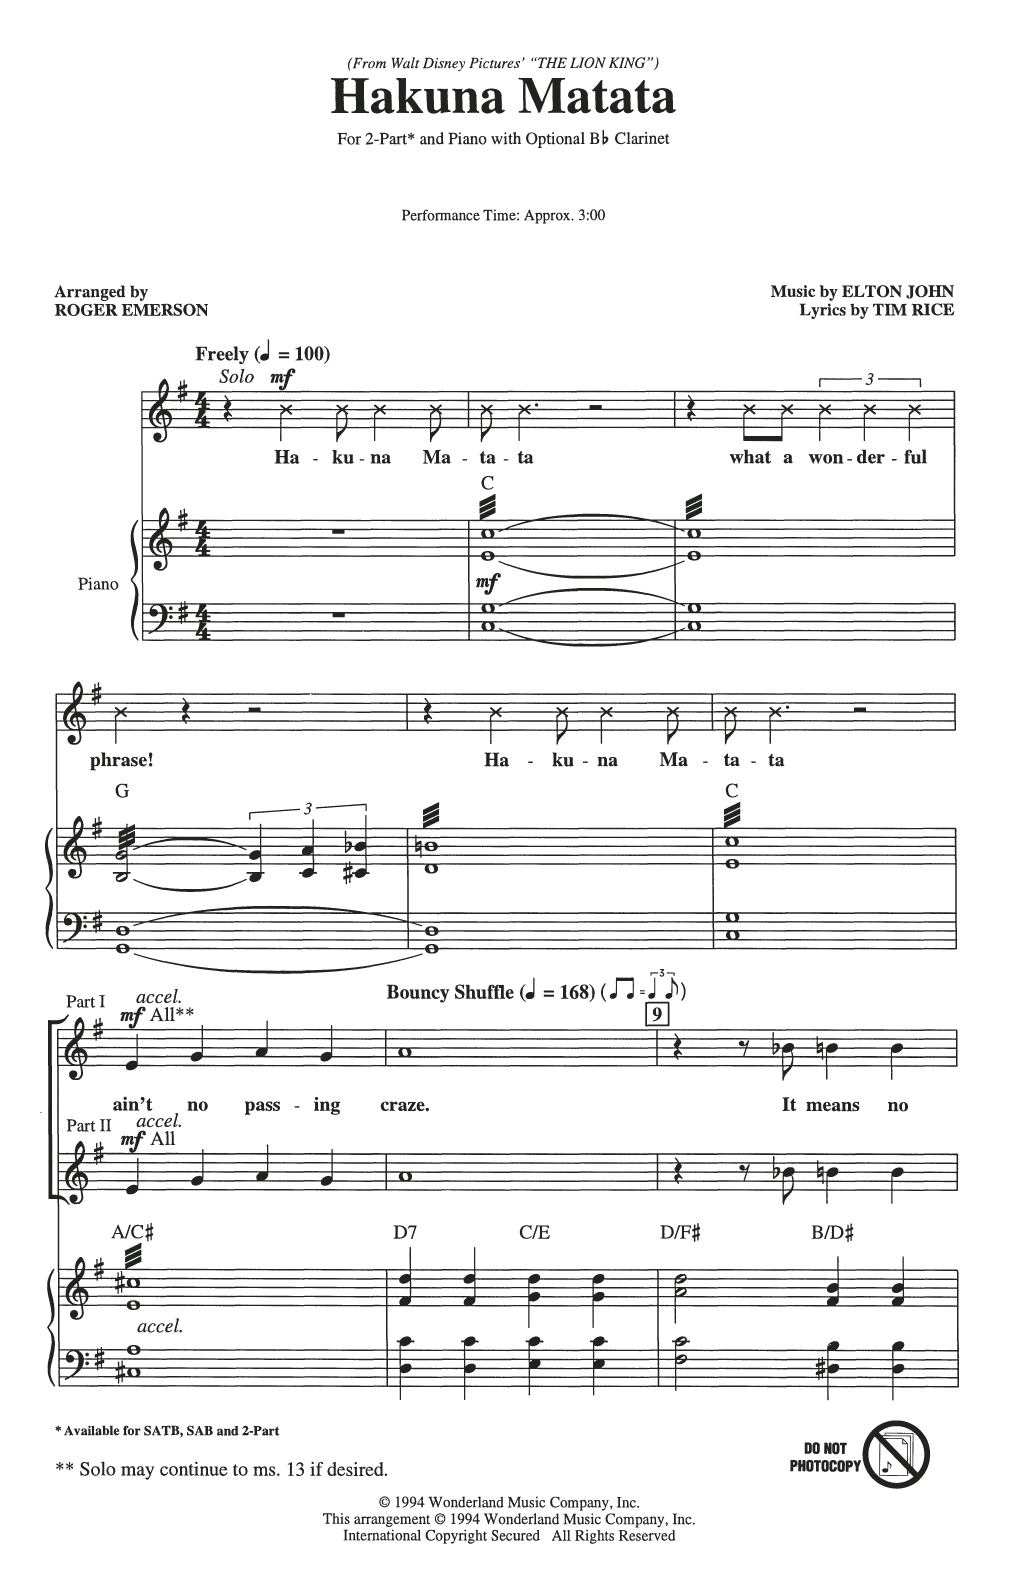 Elton John Hakuna Matata (from Disney's The Lion King) (arr. Roger Emerson) sheet music notes and chords